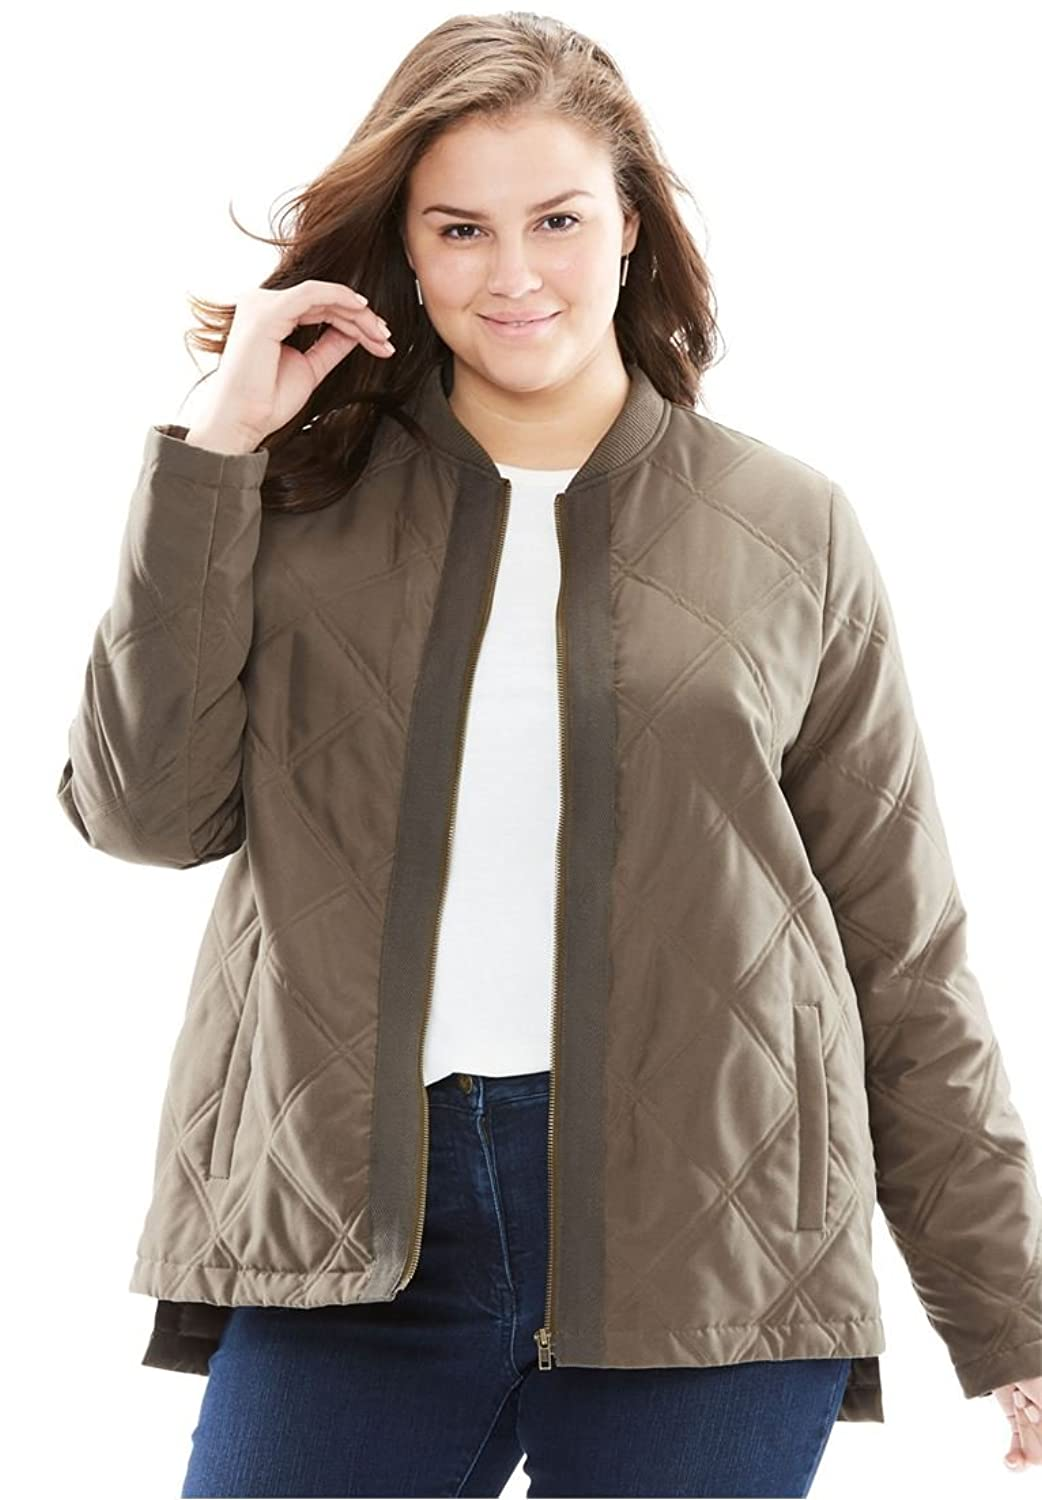 cc6d9364ab0f0 Woman Within Women s Plus Size The Laid Back Bomber Jacket ...